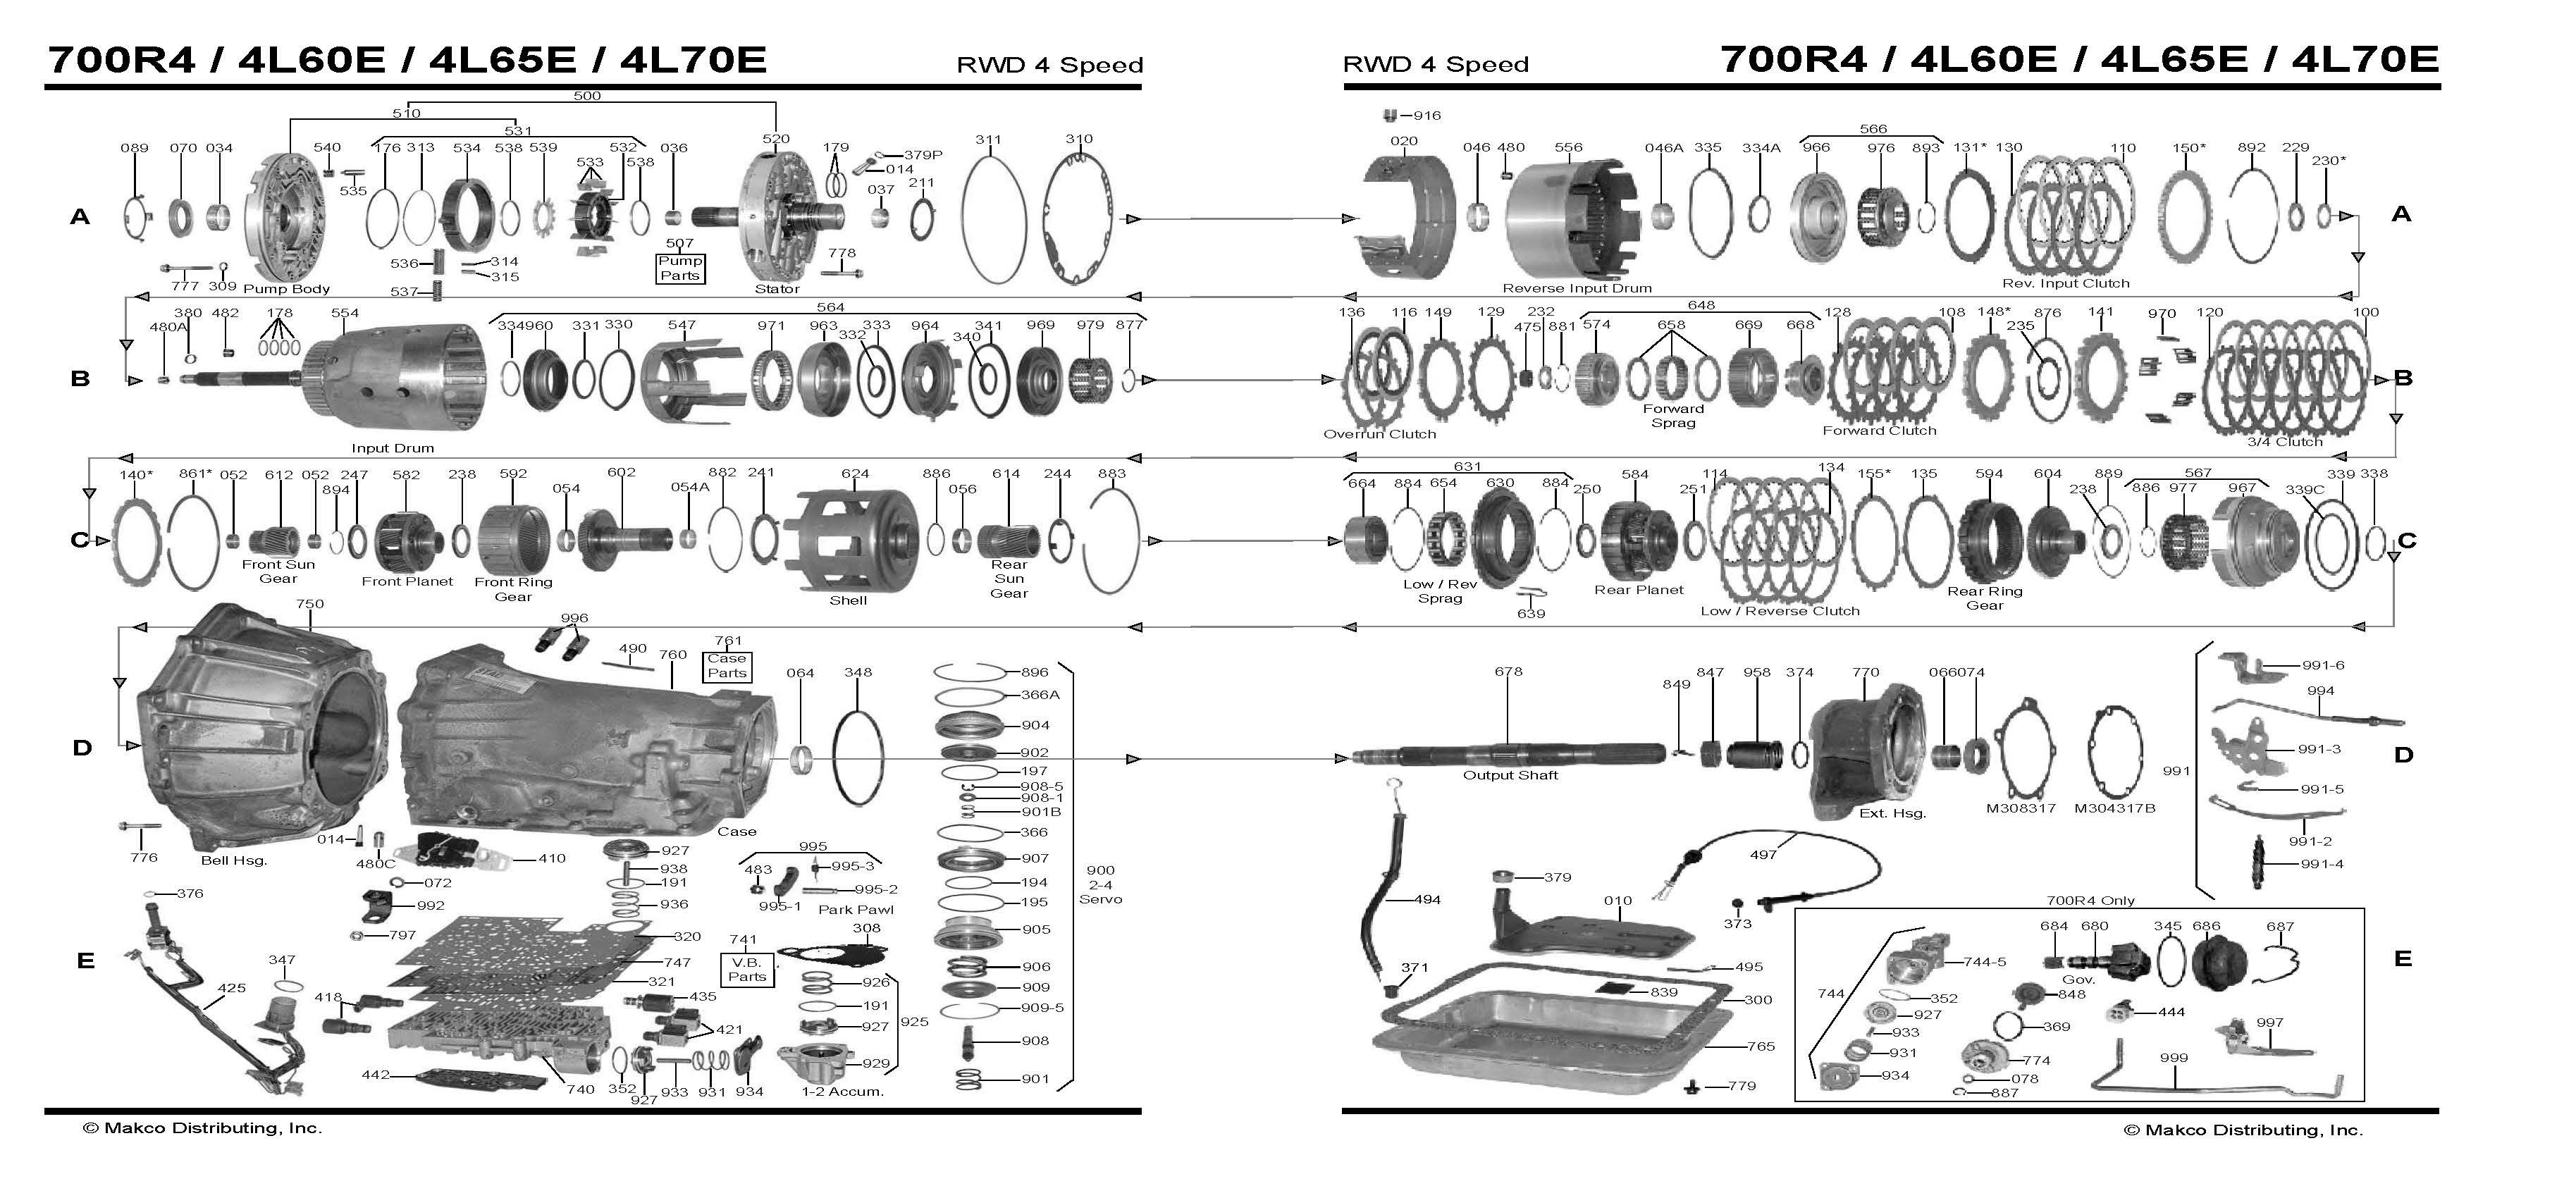 powerglide transmission line diagram powerglide transmission modulator diagram #1